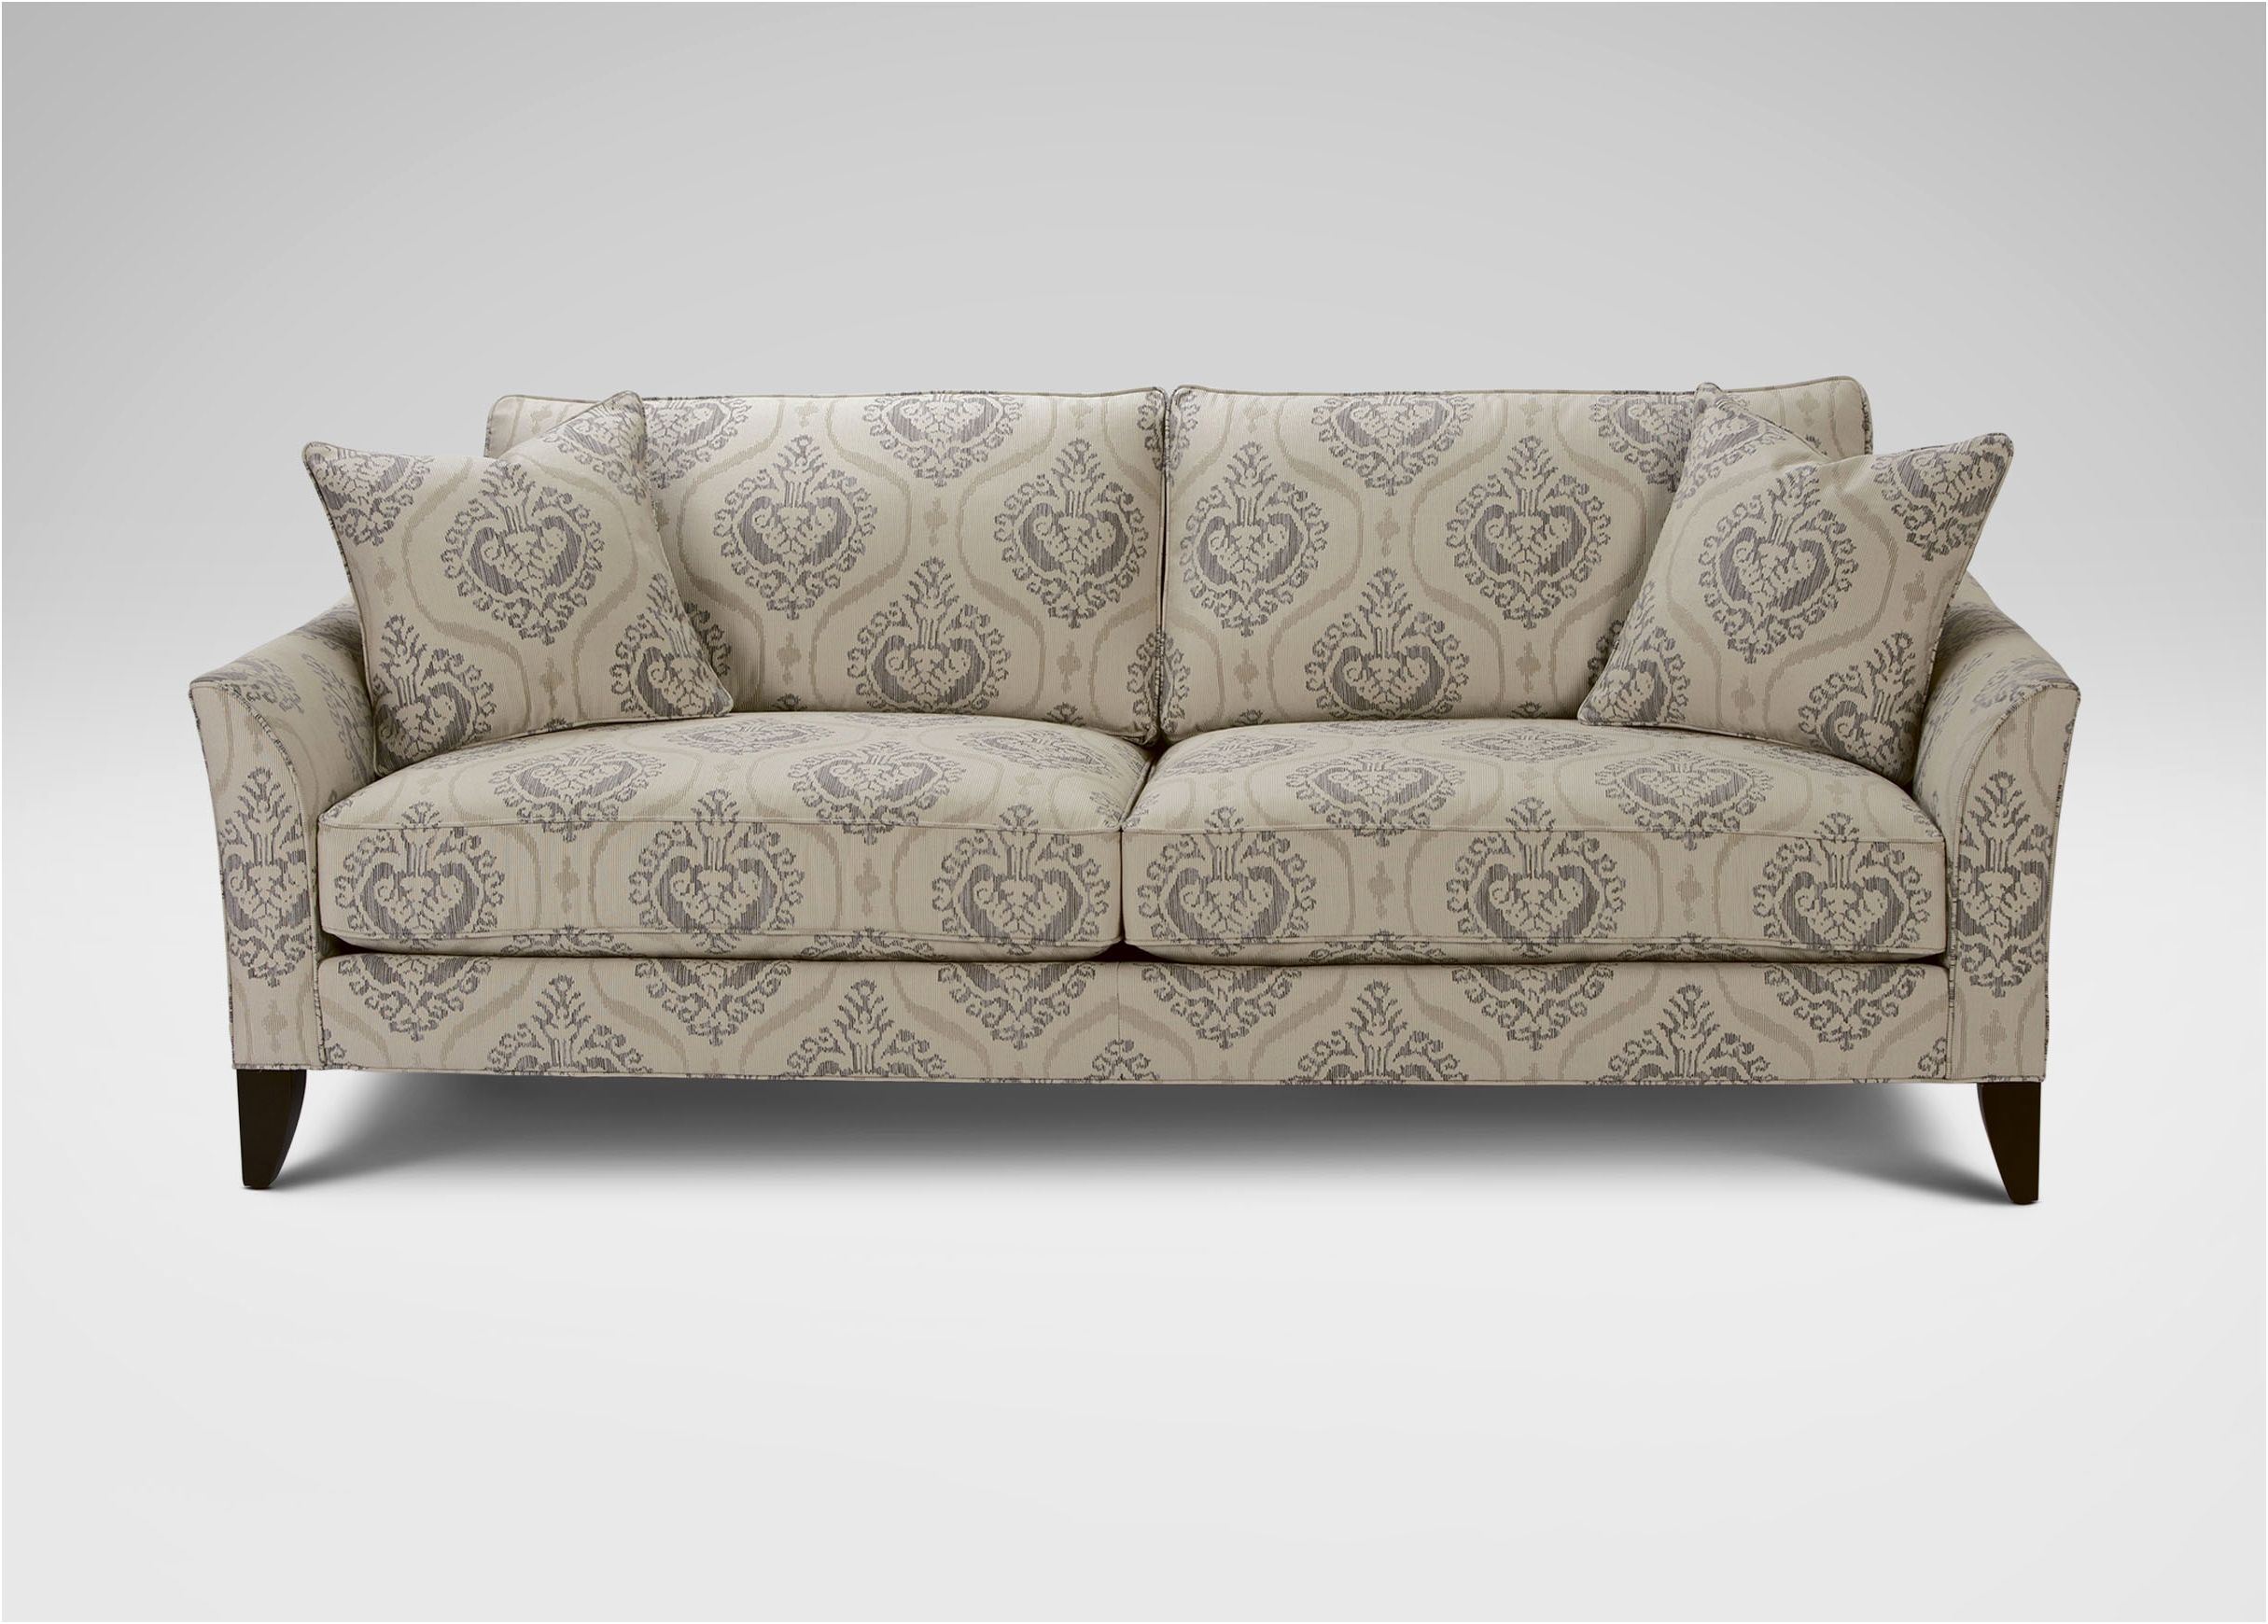 new cb2 sofa bed ideas-Sensational Cb2 sofa Bed Model